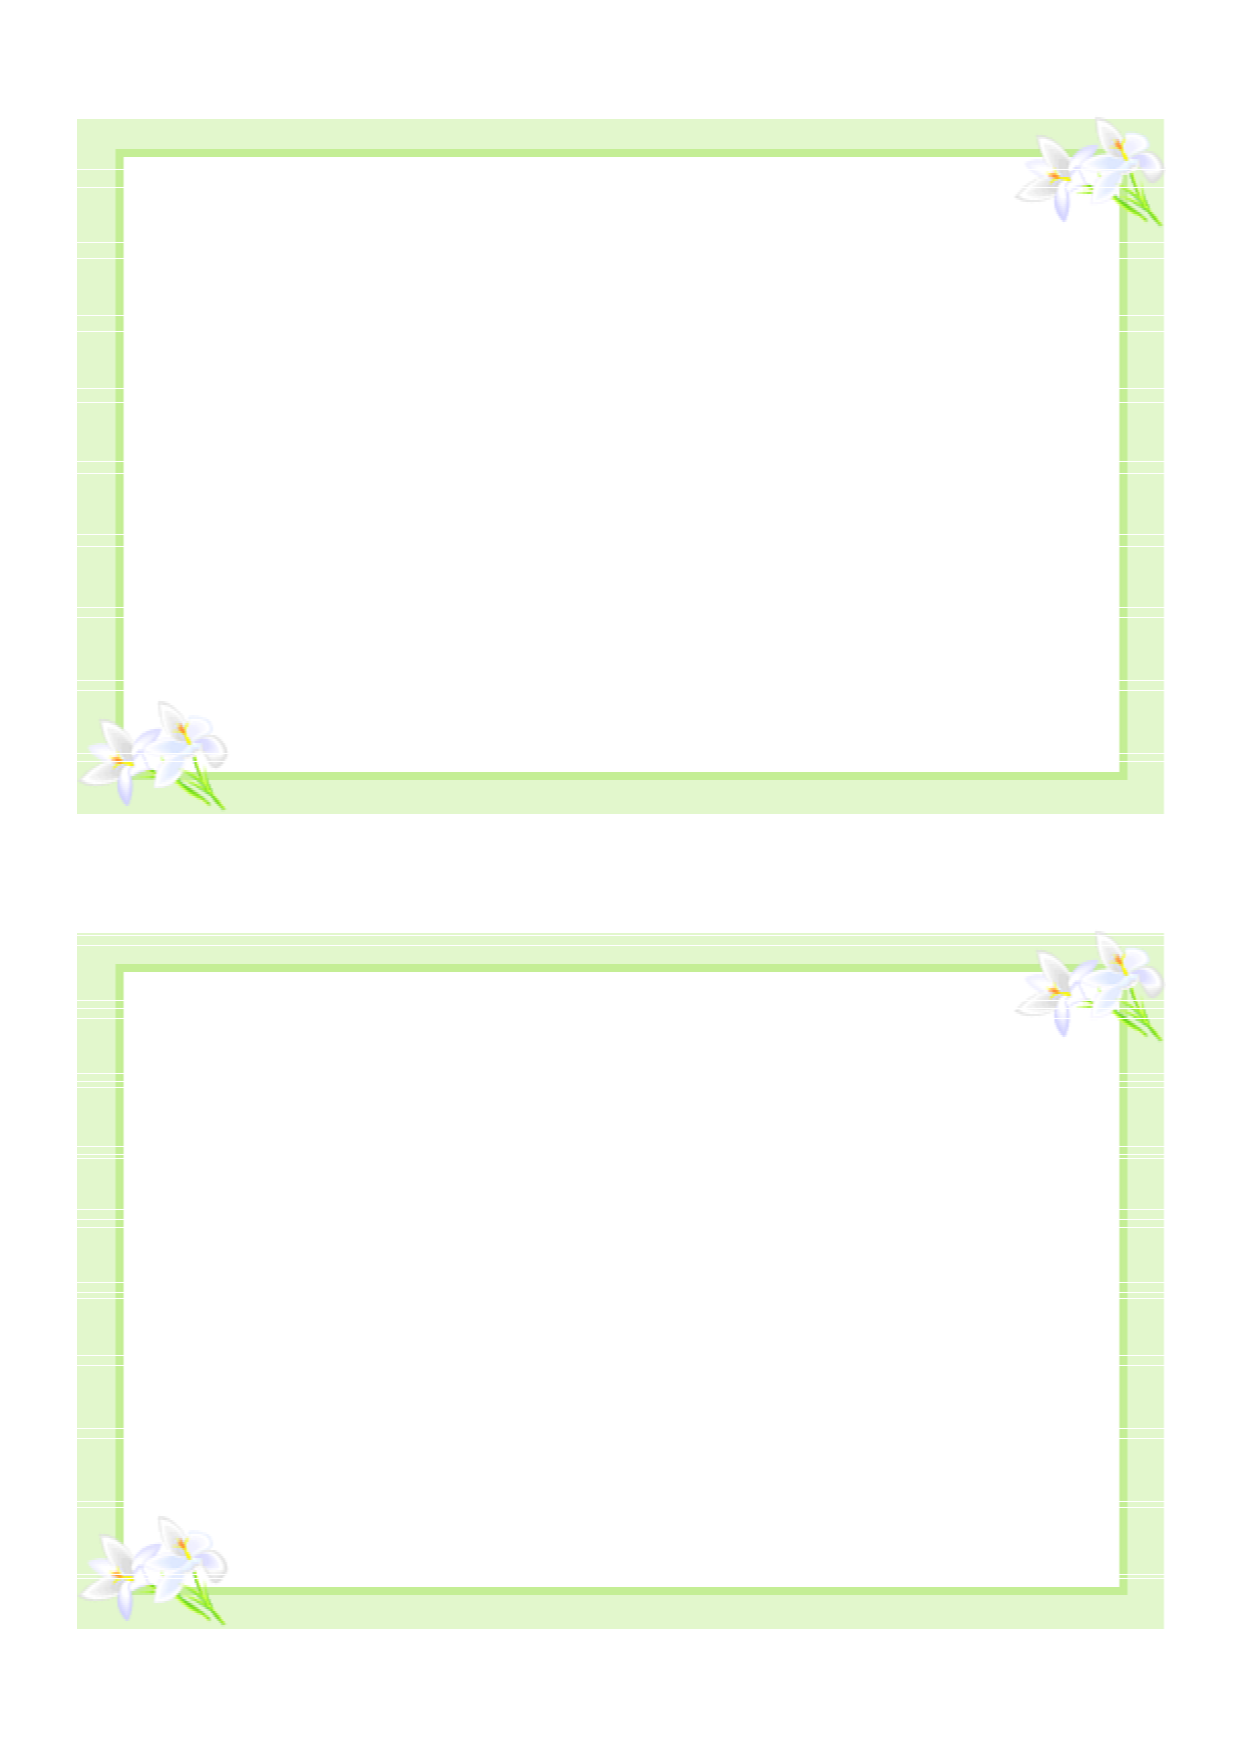 5 Images of Sympathy Card Free Printable Templates